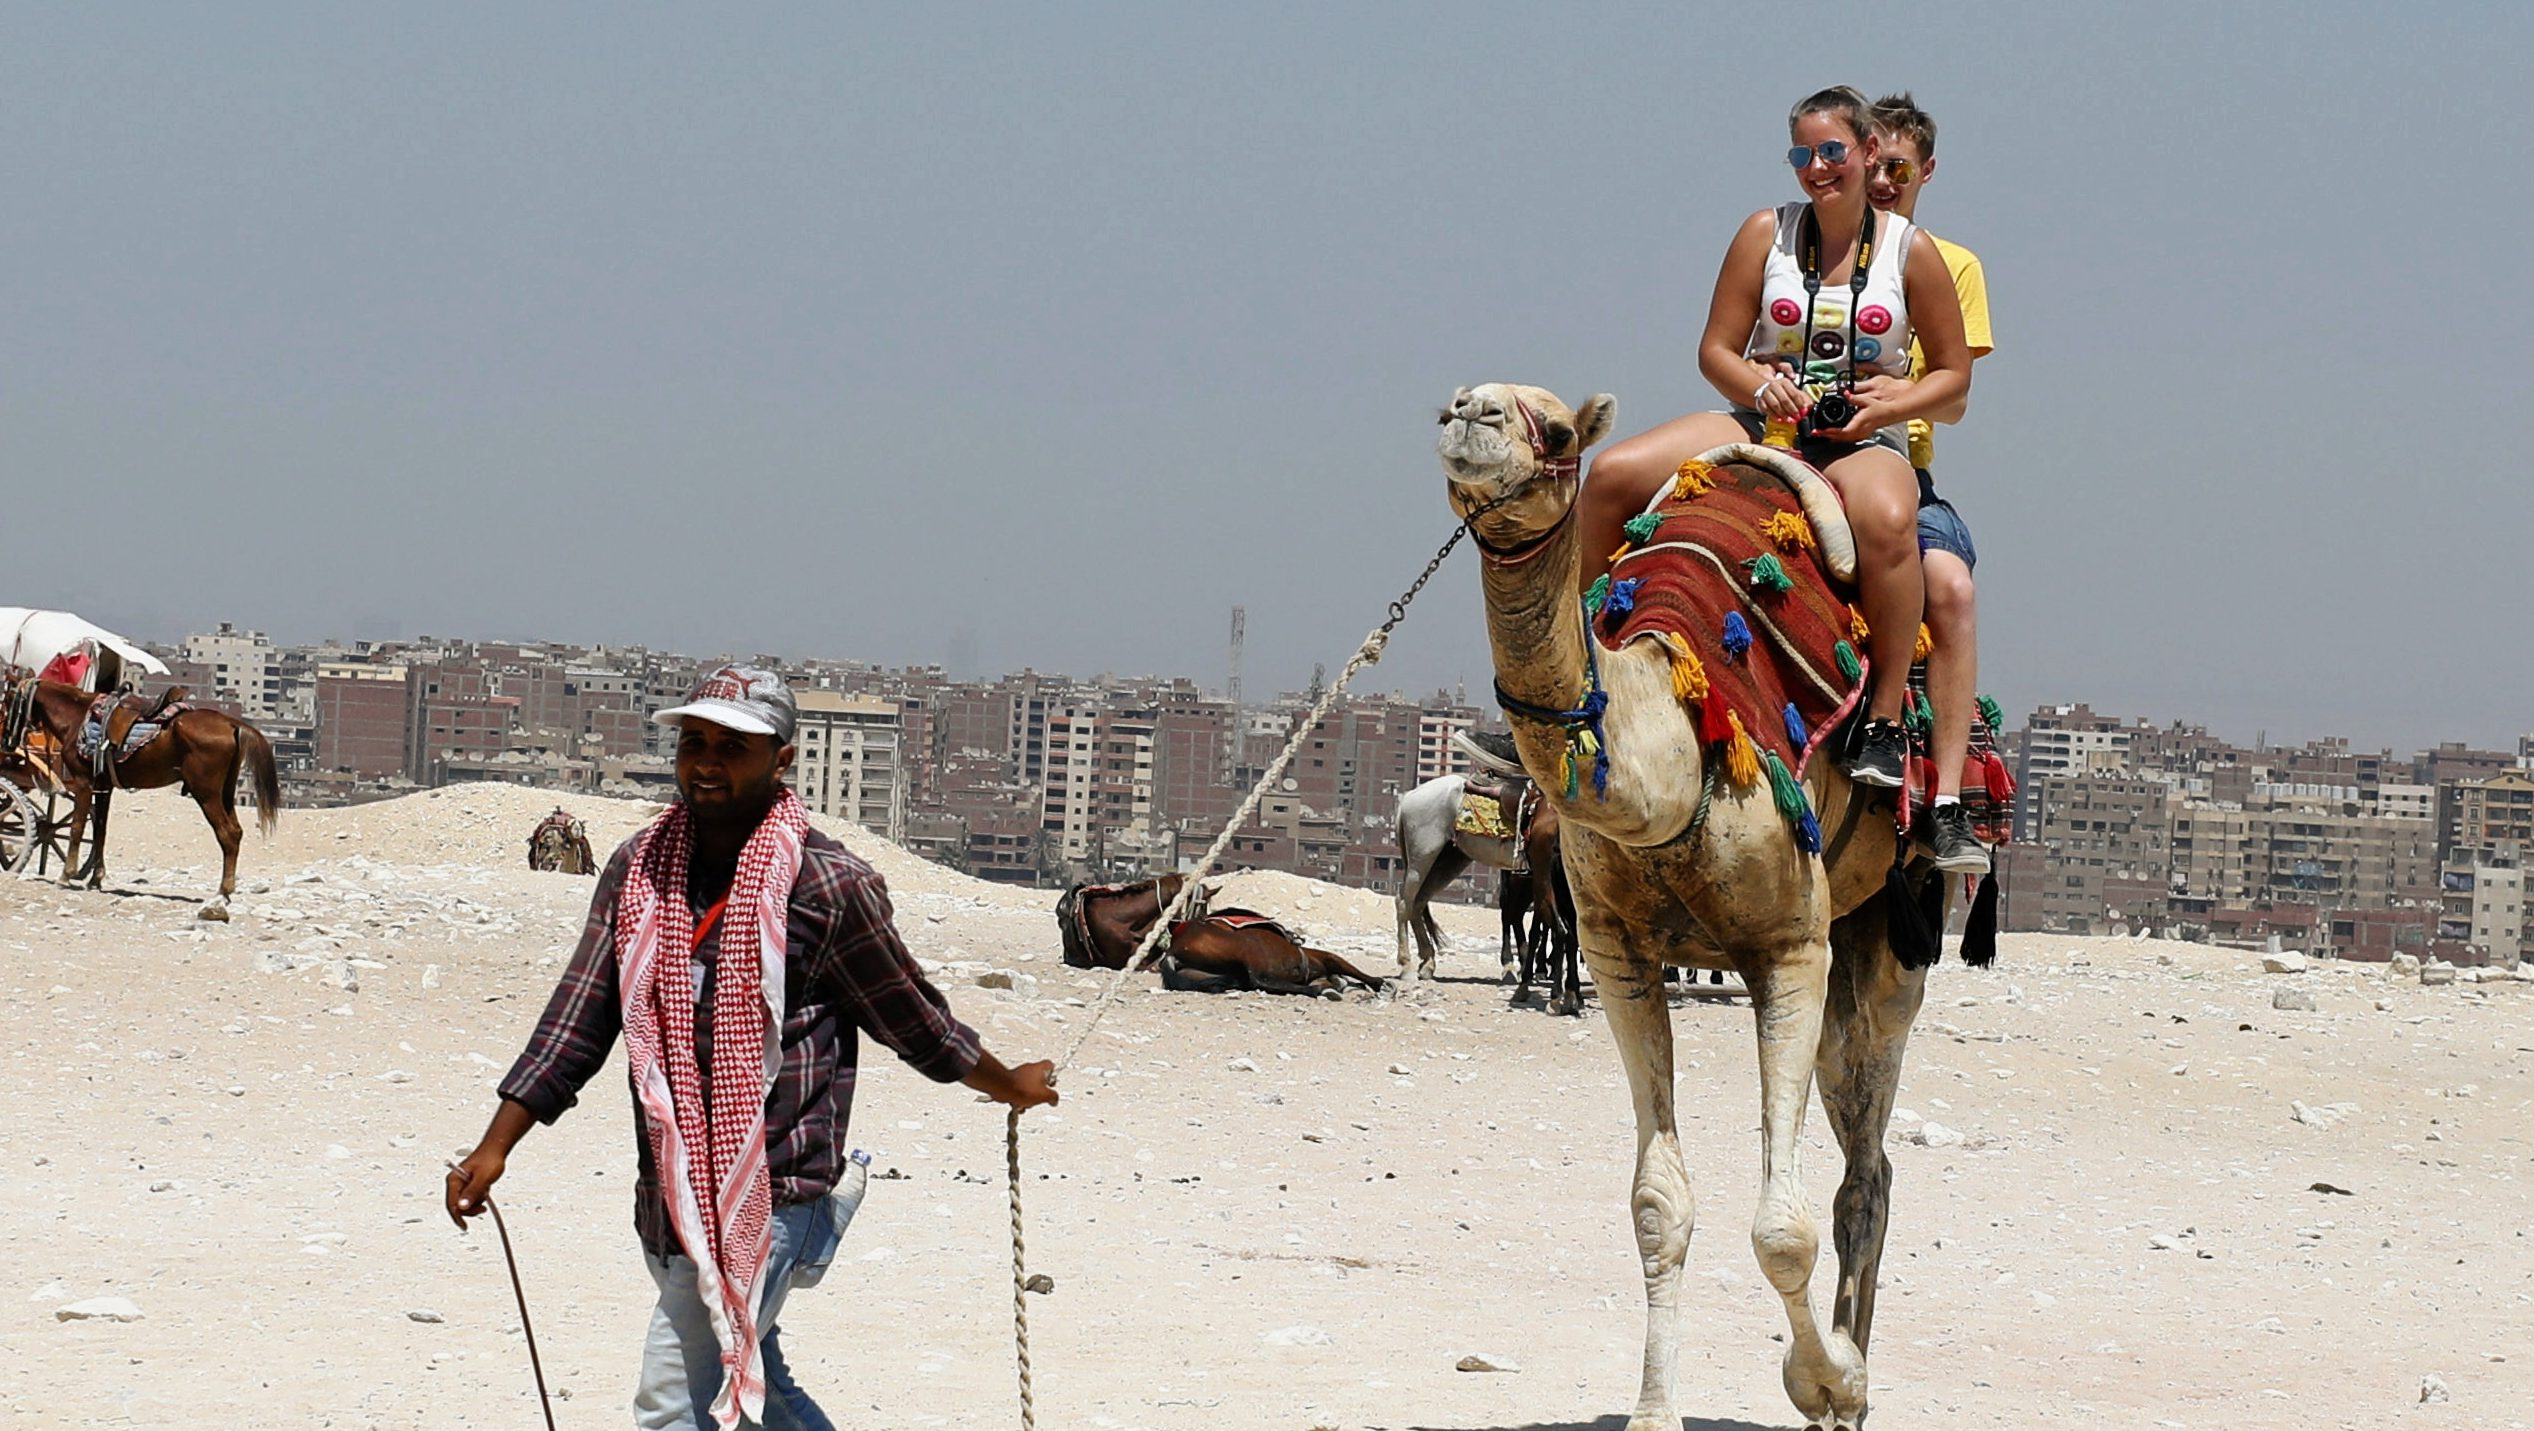 A man pulls a rope as he leads a camel carrying tourists at the Giza Pyramids on the outskirts of Cairo, Egypt August 7, 2017.